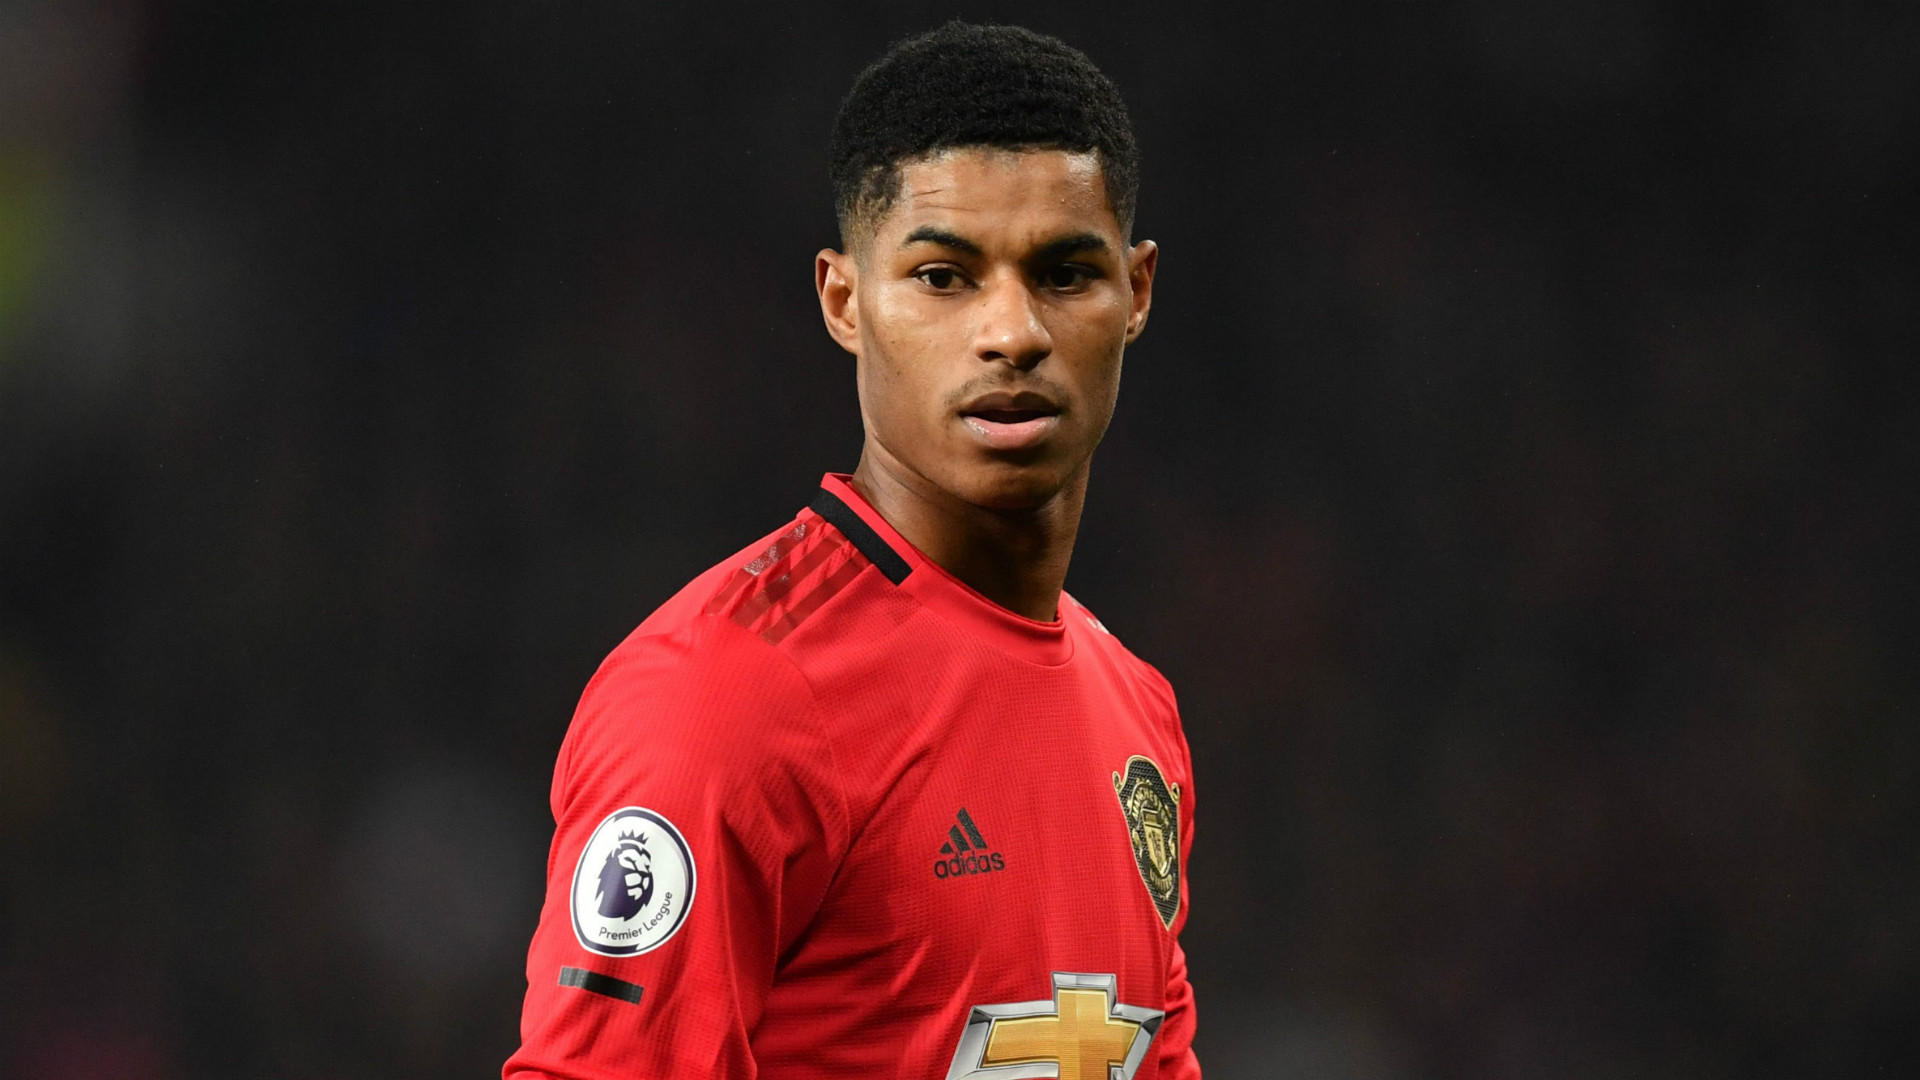 Rashford partnering with Raiola could cause more problems for Man Utd - Meulensteen